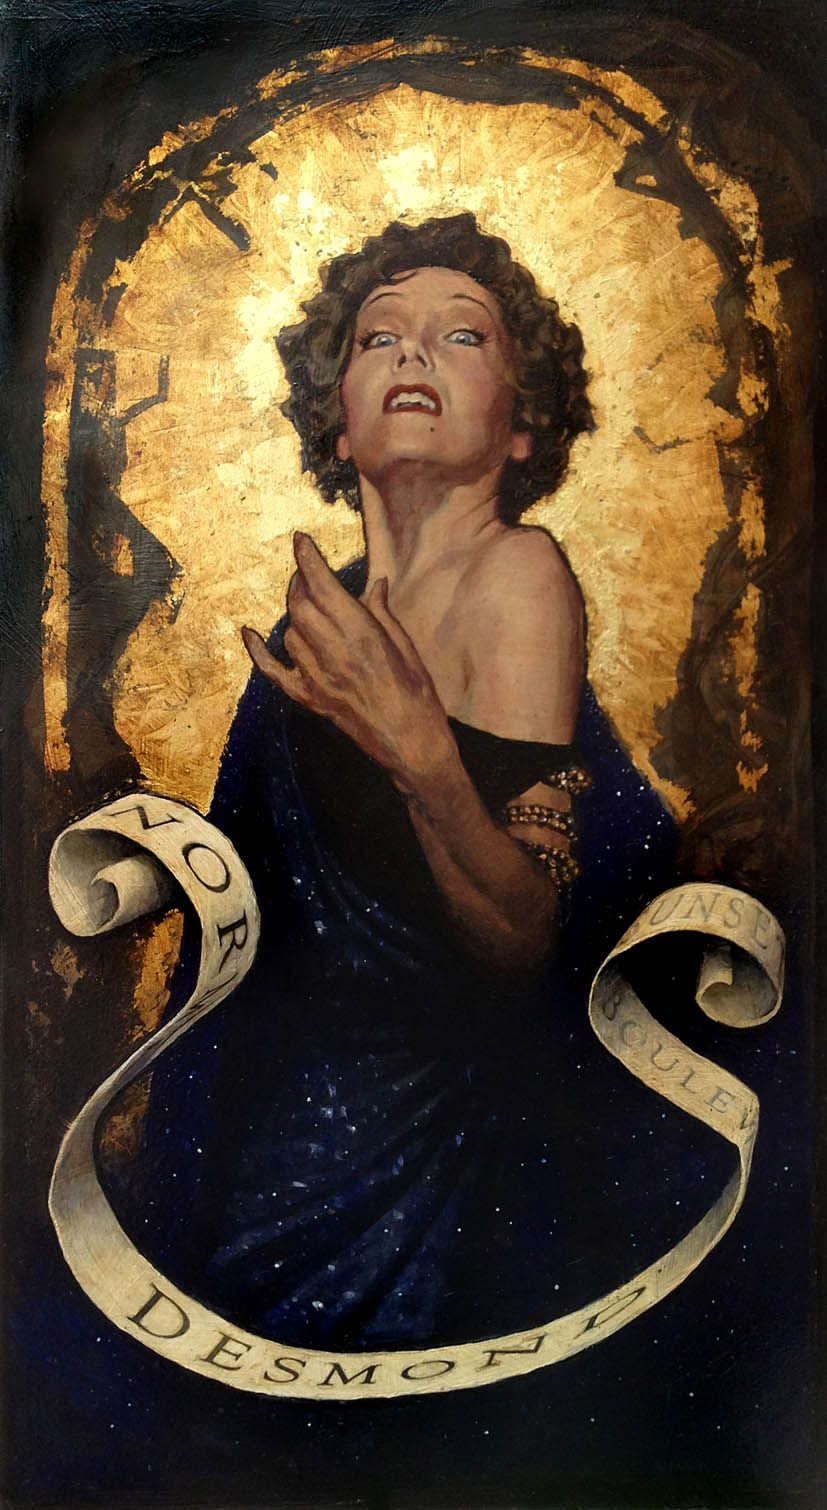 The Apotheosis of Norma Desmond by PJ Lynch